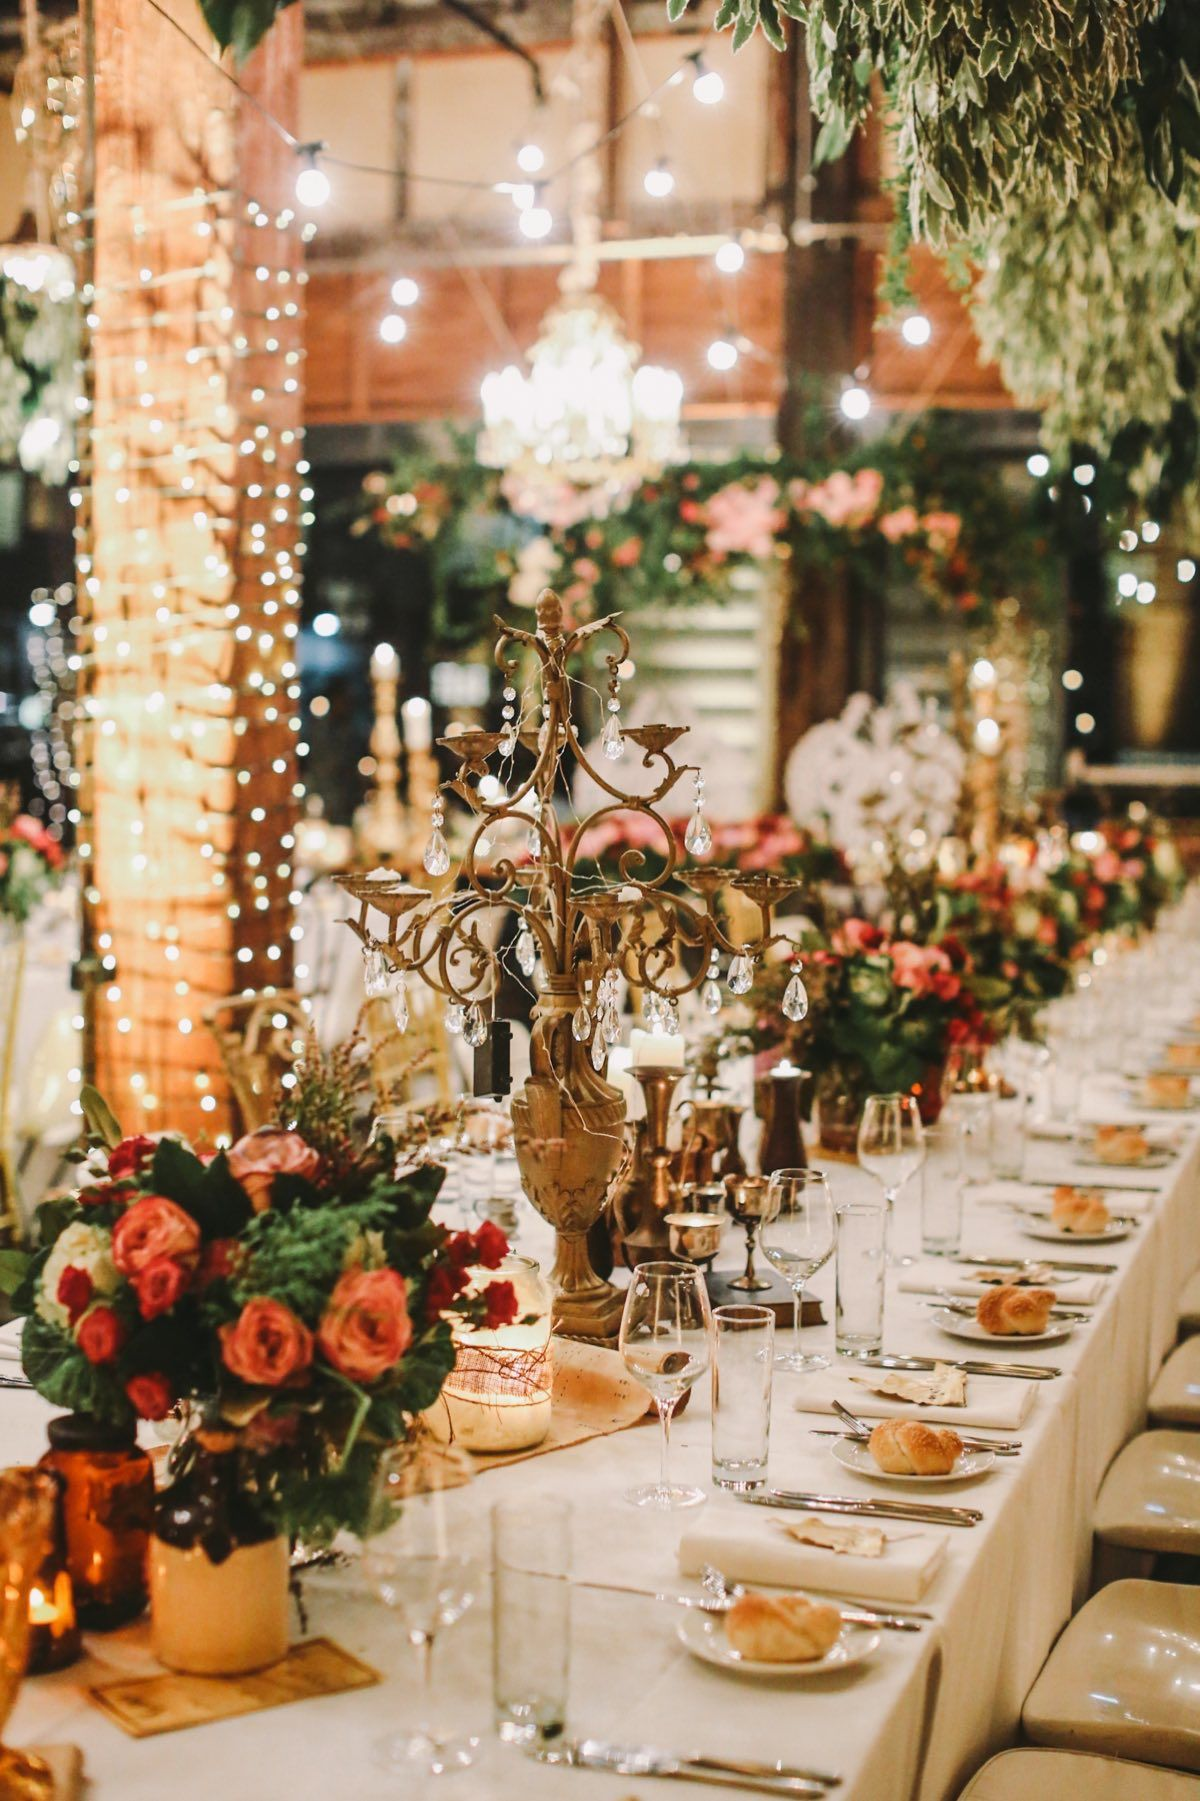 Where to even begin with this stunner? We're simply dying over this chic botanical garden themed wedding from Lara Hotz Photography. Every image is oozing with gorgeous details from this chic and whimsical Sydney wedding. Jess and Joel's wedding reception was like a bohemian wedding wonderland filled with twinkling lights, gorgeous gold accents, beautiful green […]